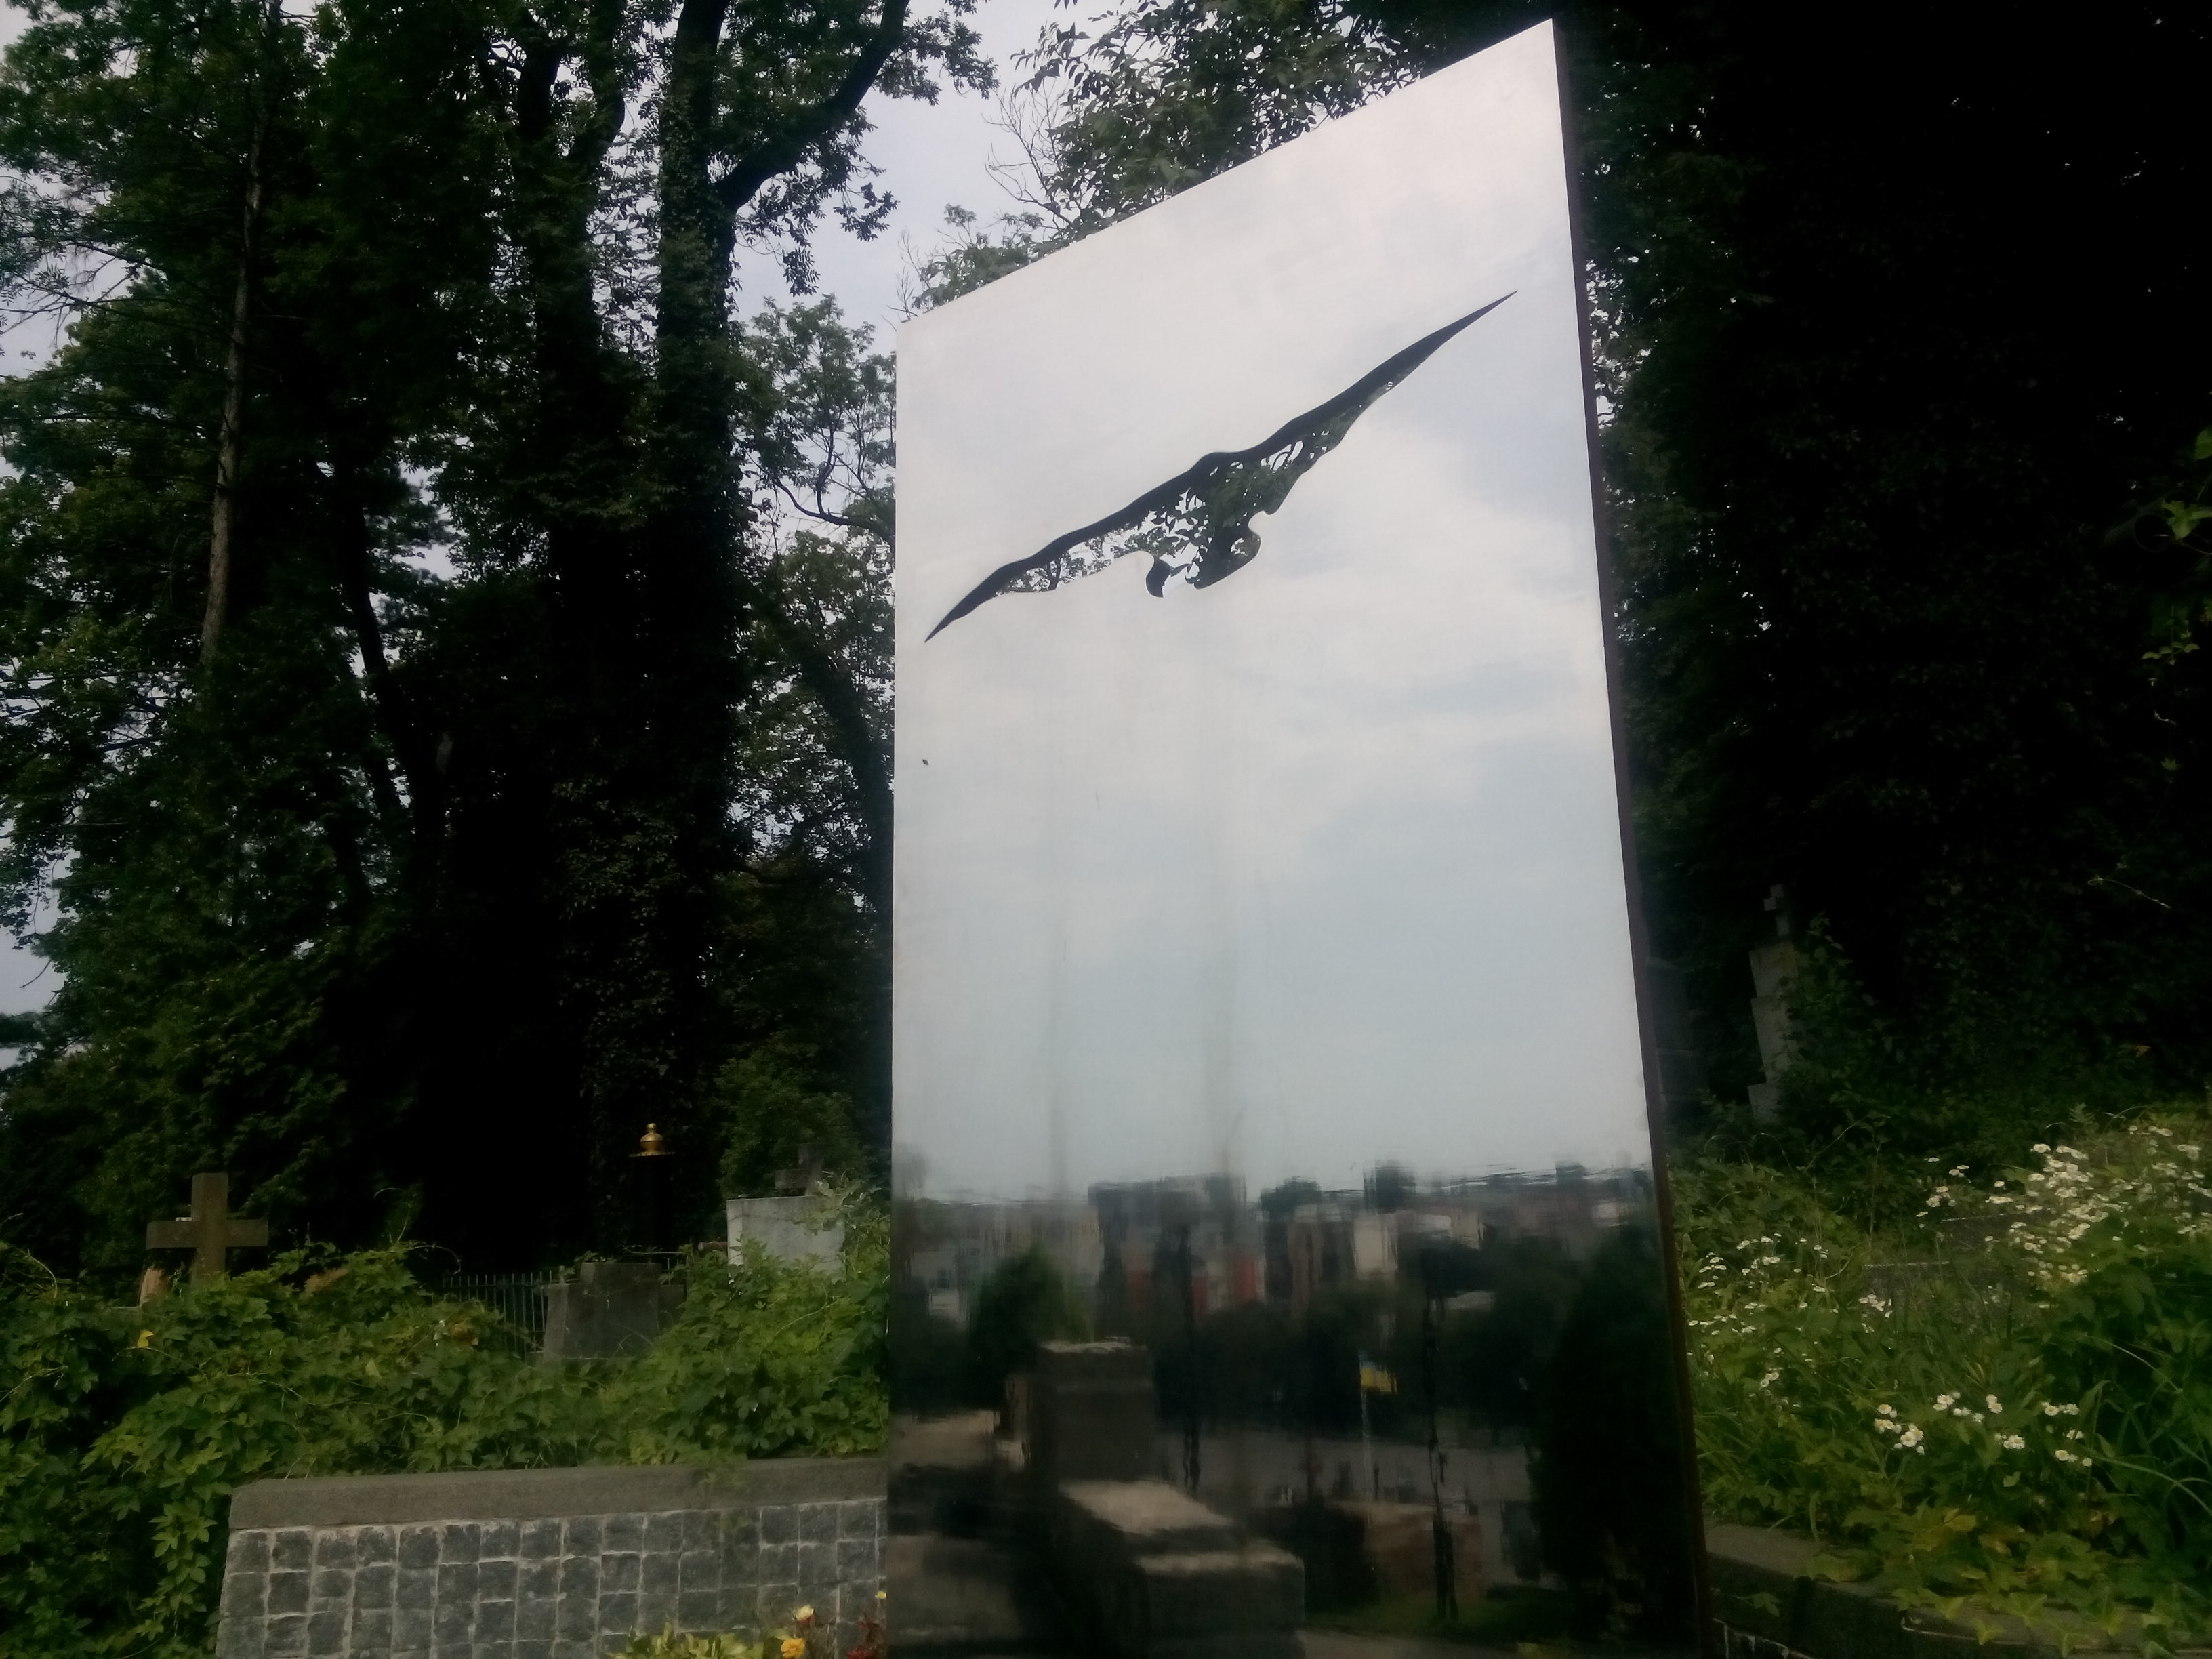 A headstone made from reflective metal with a flying bird carved out, amongst the bushes